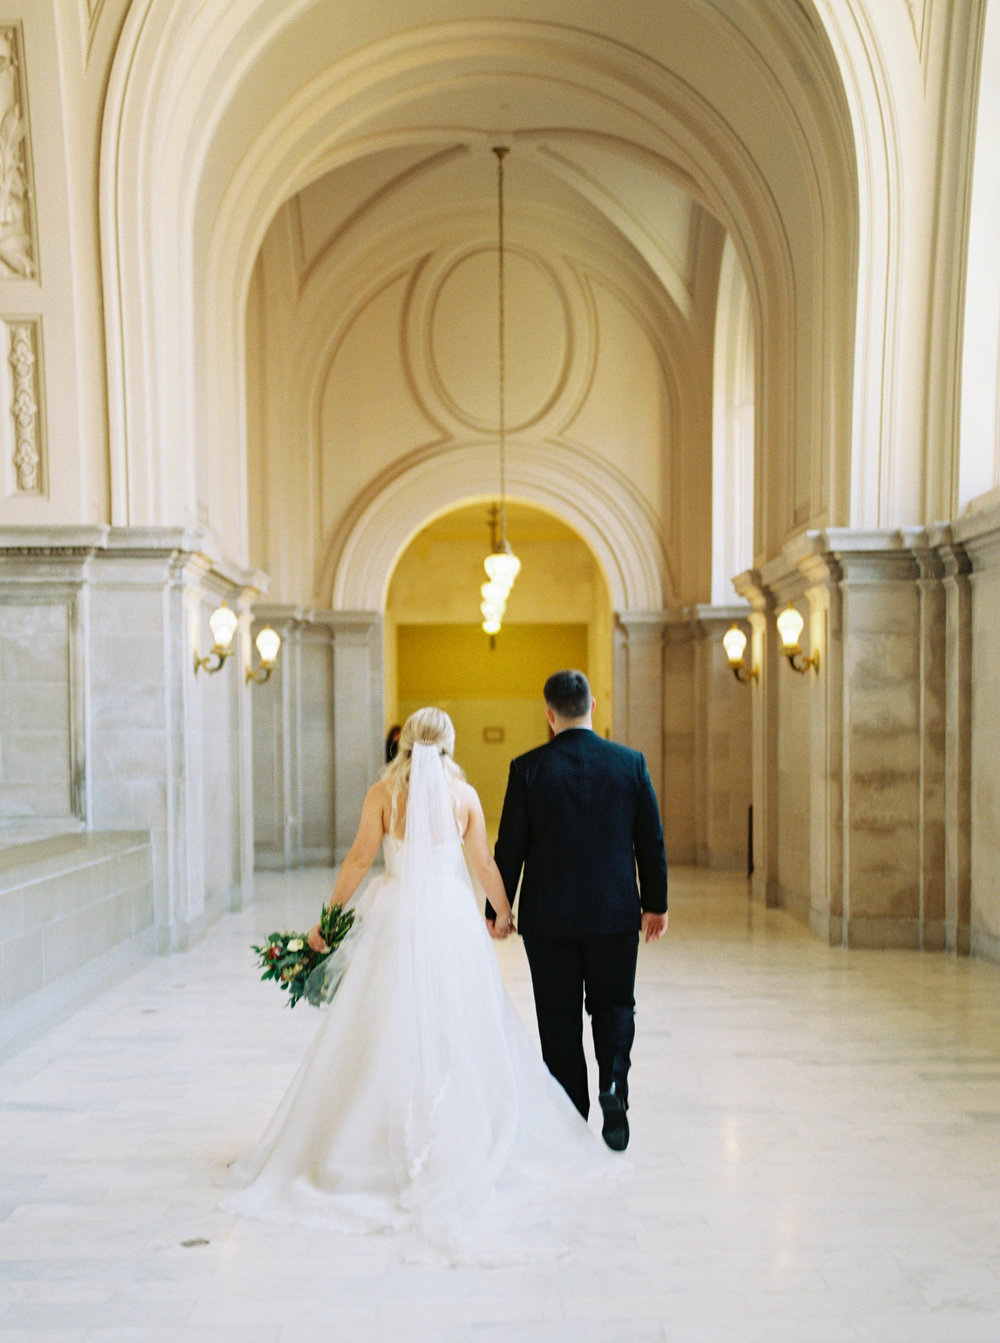 DennisRoyCoronel_Photography_SanFranciscoCityHall_Wedding-56.jpg